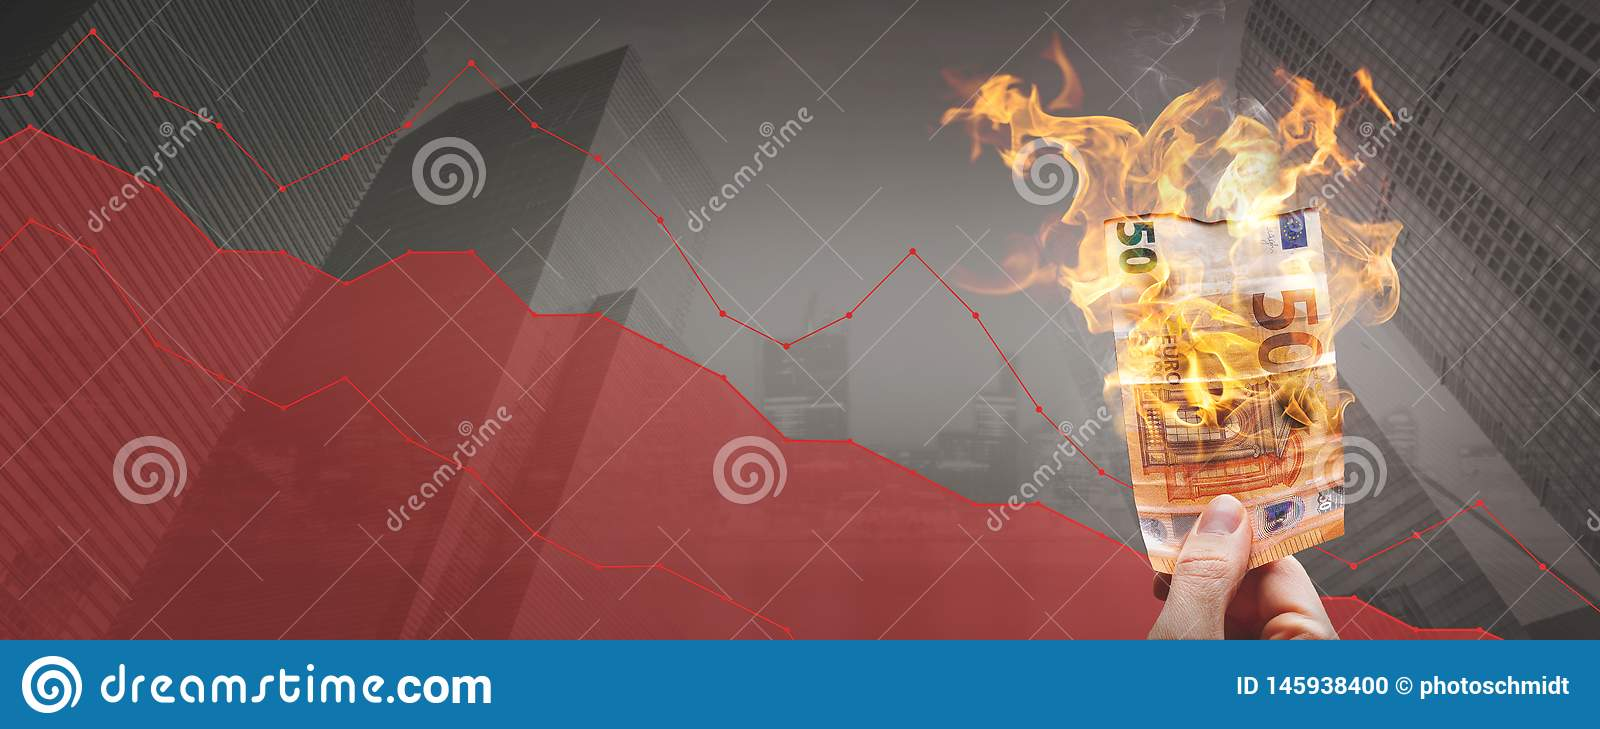 Falling stock prices – burning 50€ banknote in front of a declining graph